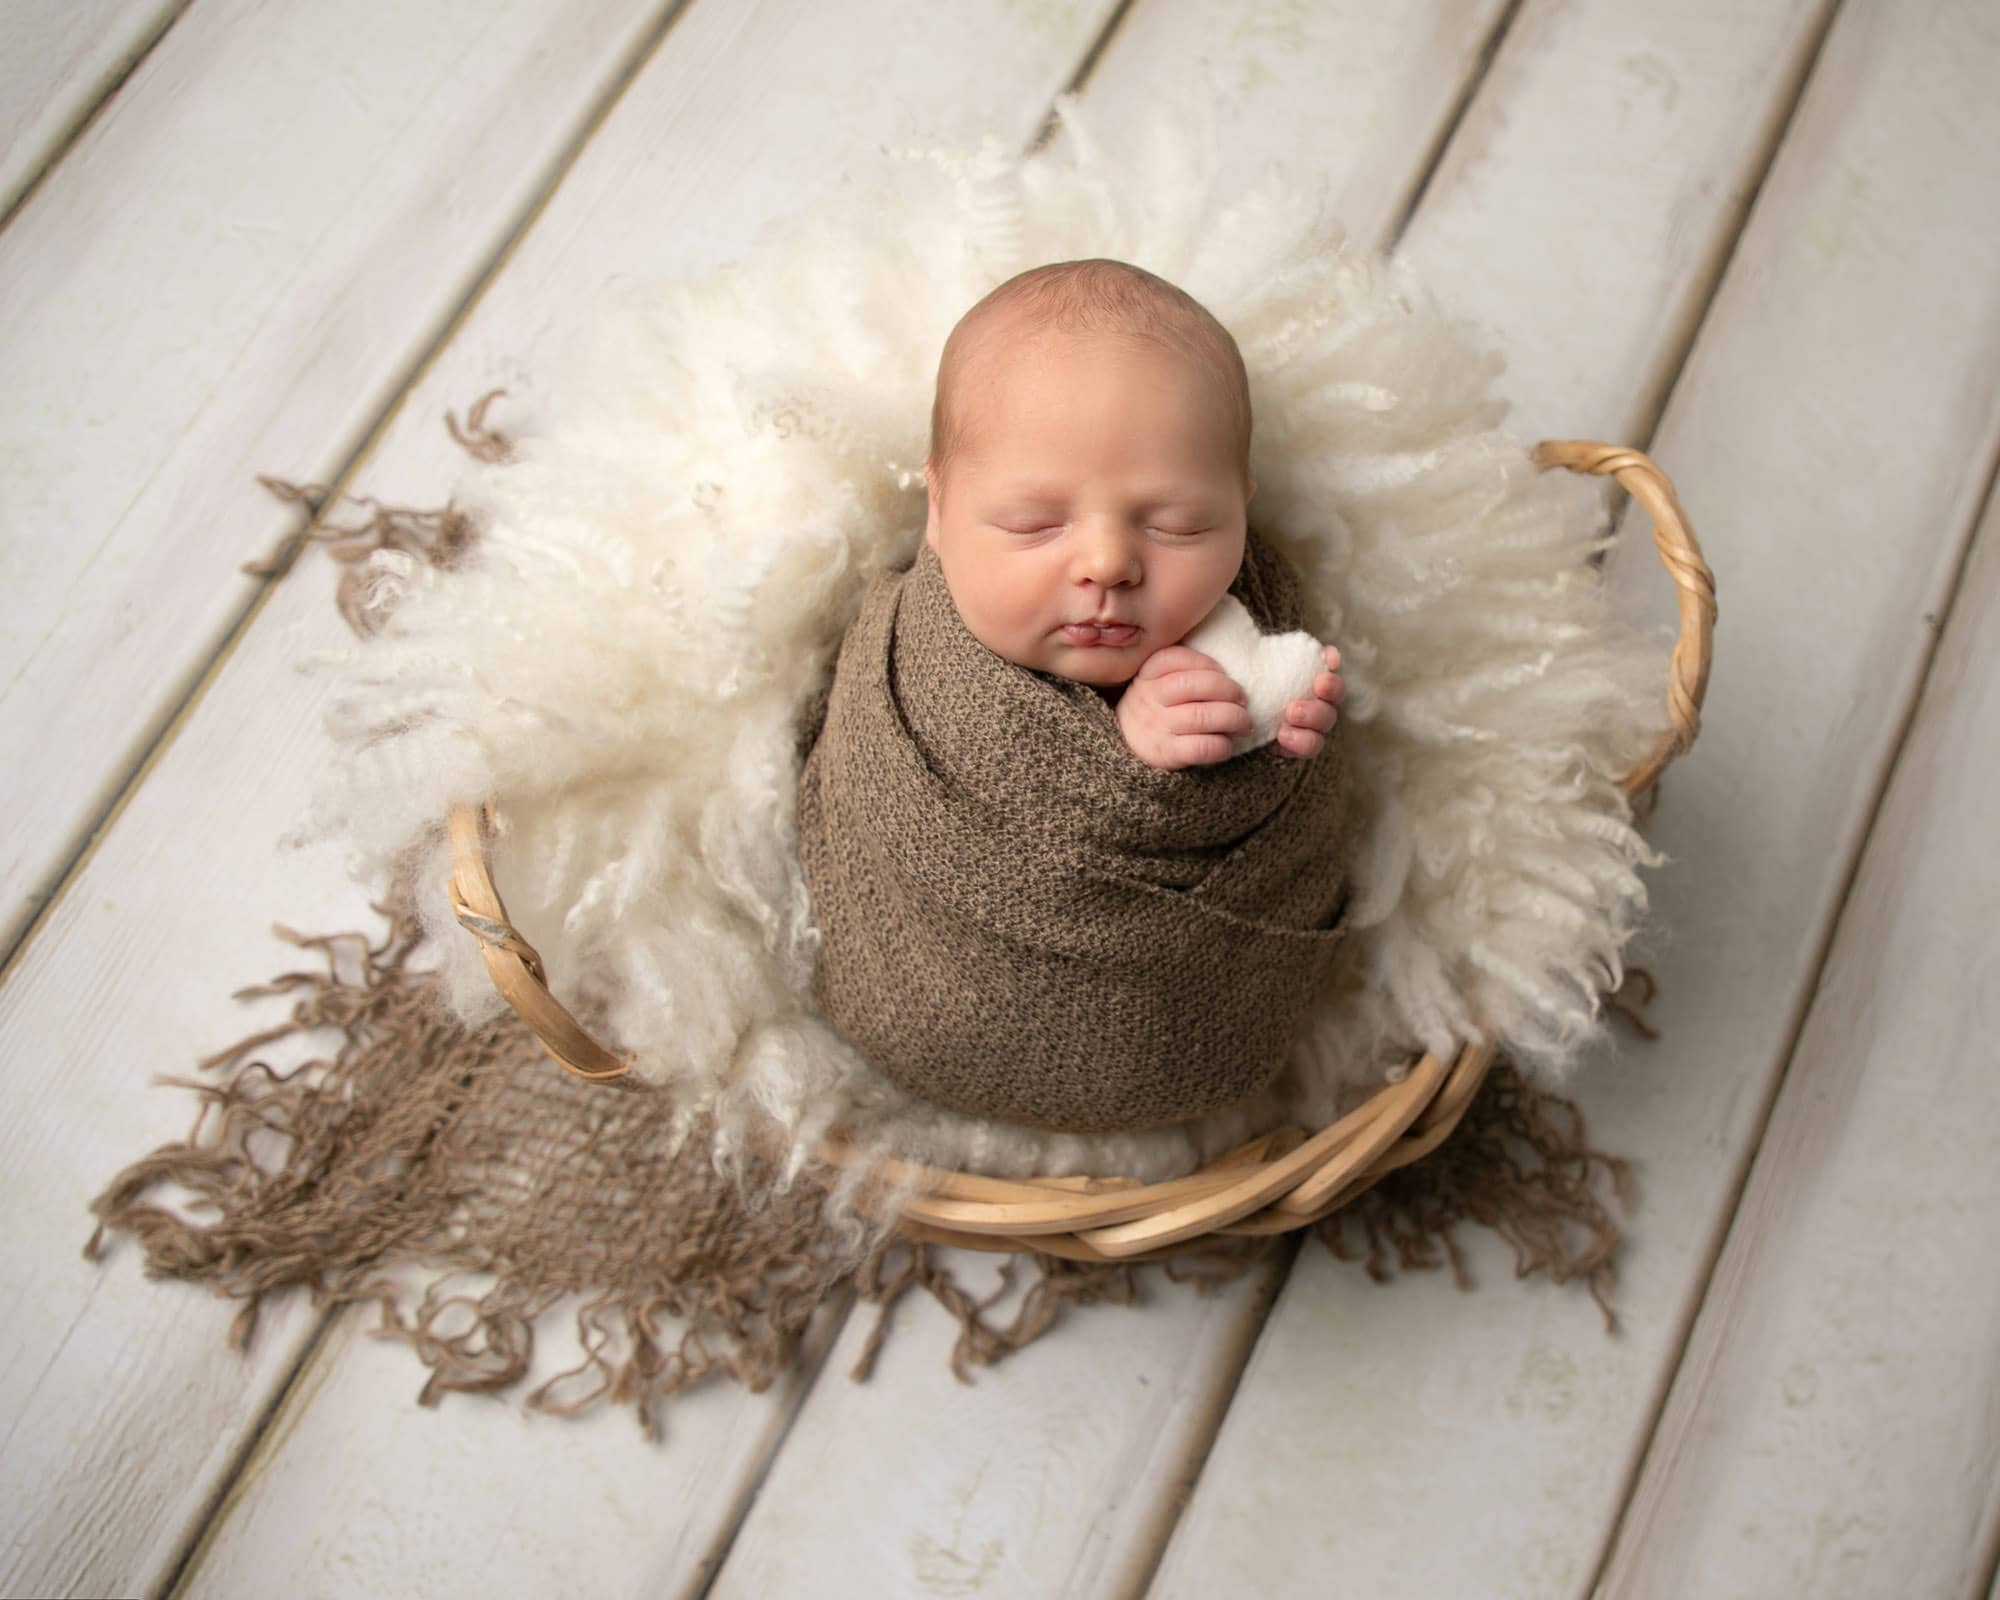 Baby boy wrapped in brown fabric, in a basket with cream fur and holding a cream heart. Image taken from above during Glasgow Baby Photoshoot